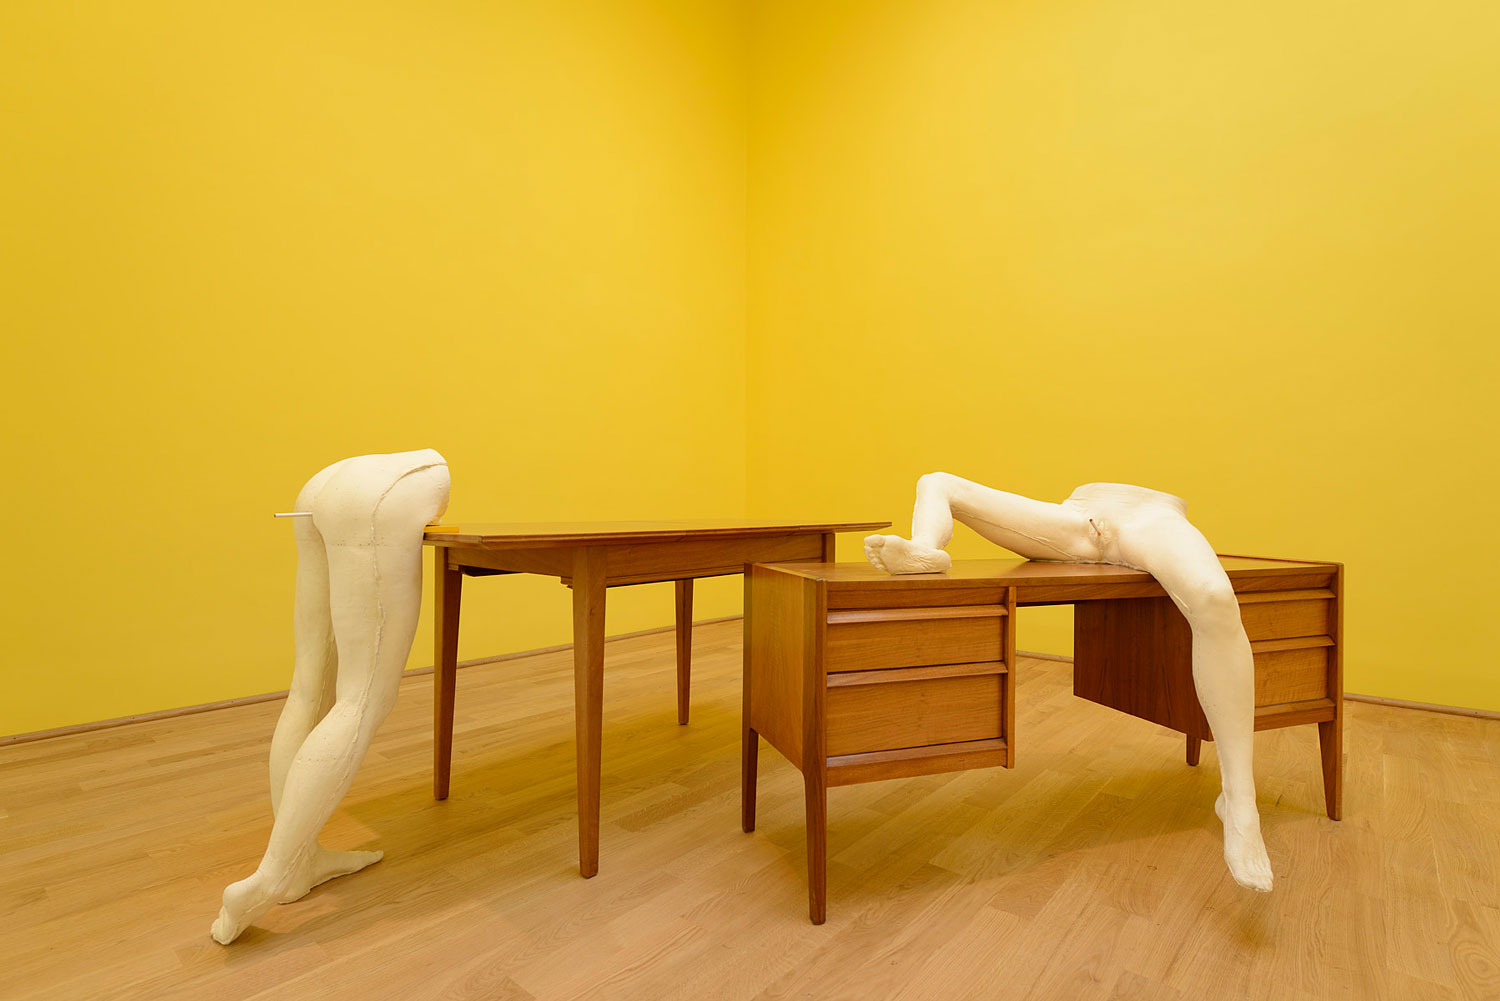 Scream Daddio by Sarah Lucas at British Pavilion Venice Biennale 2015. Photo by Cristiano Corte   Yellowtrace